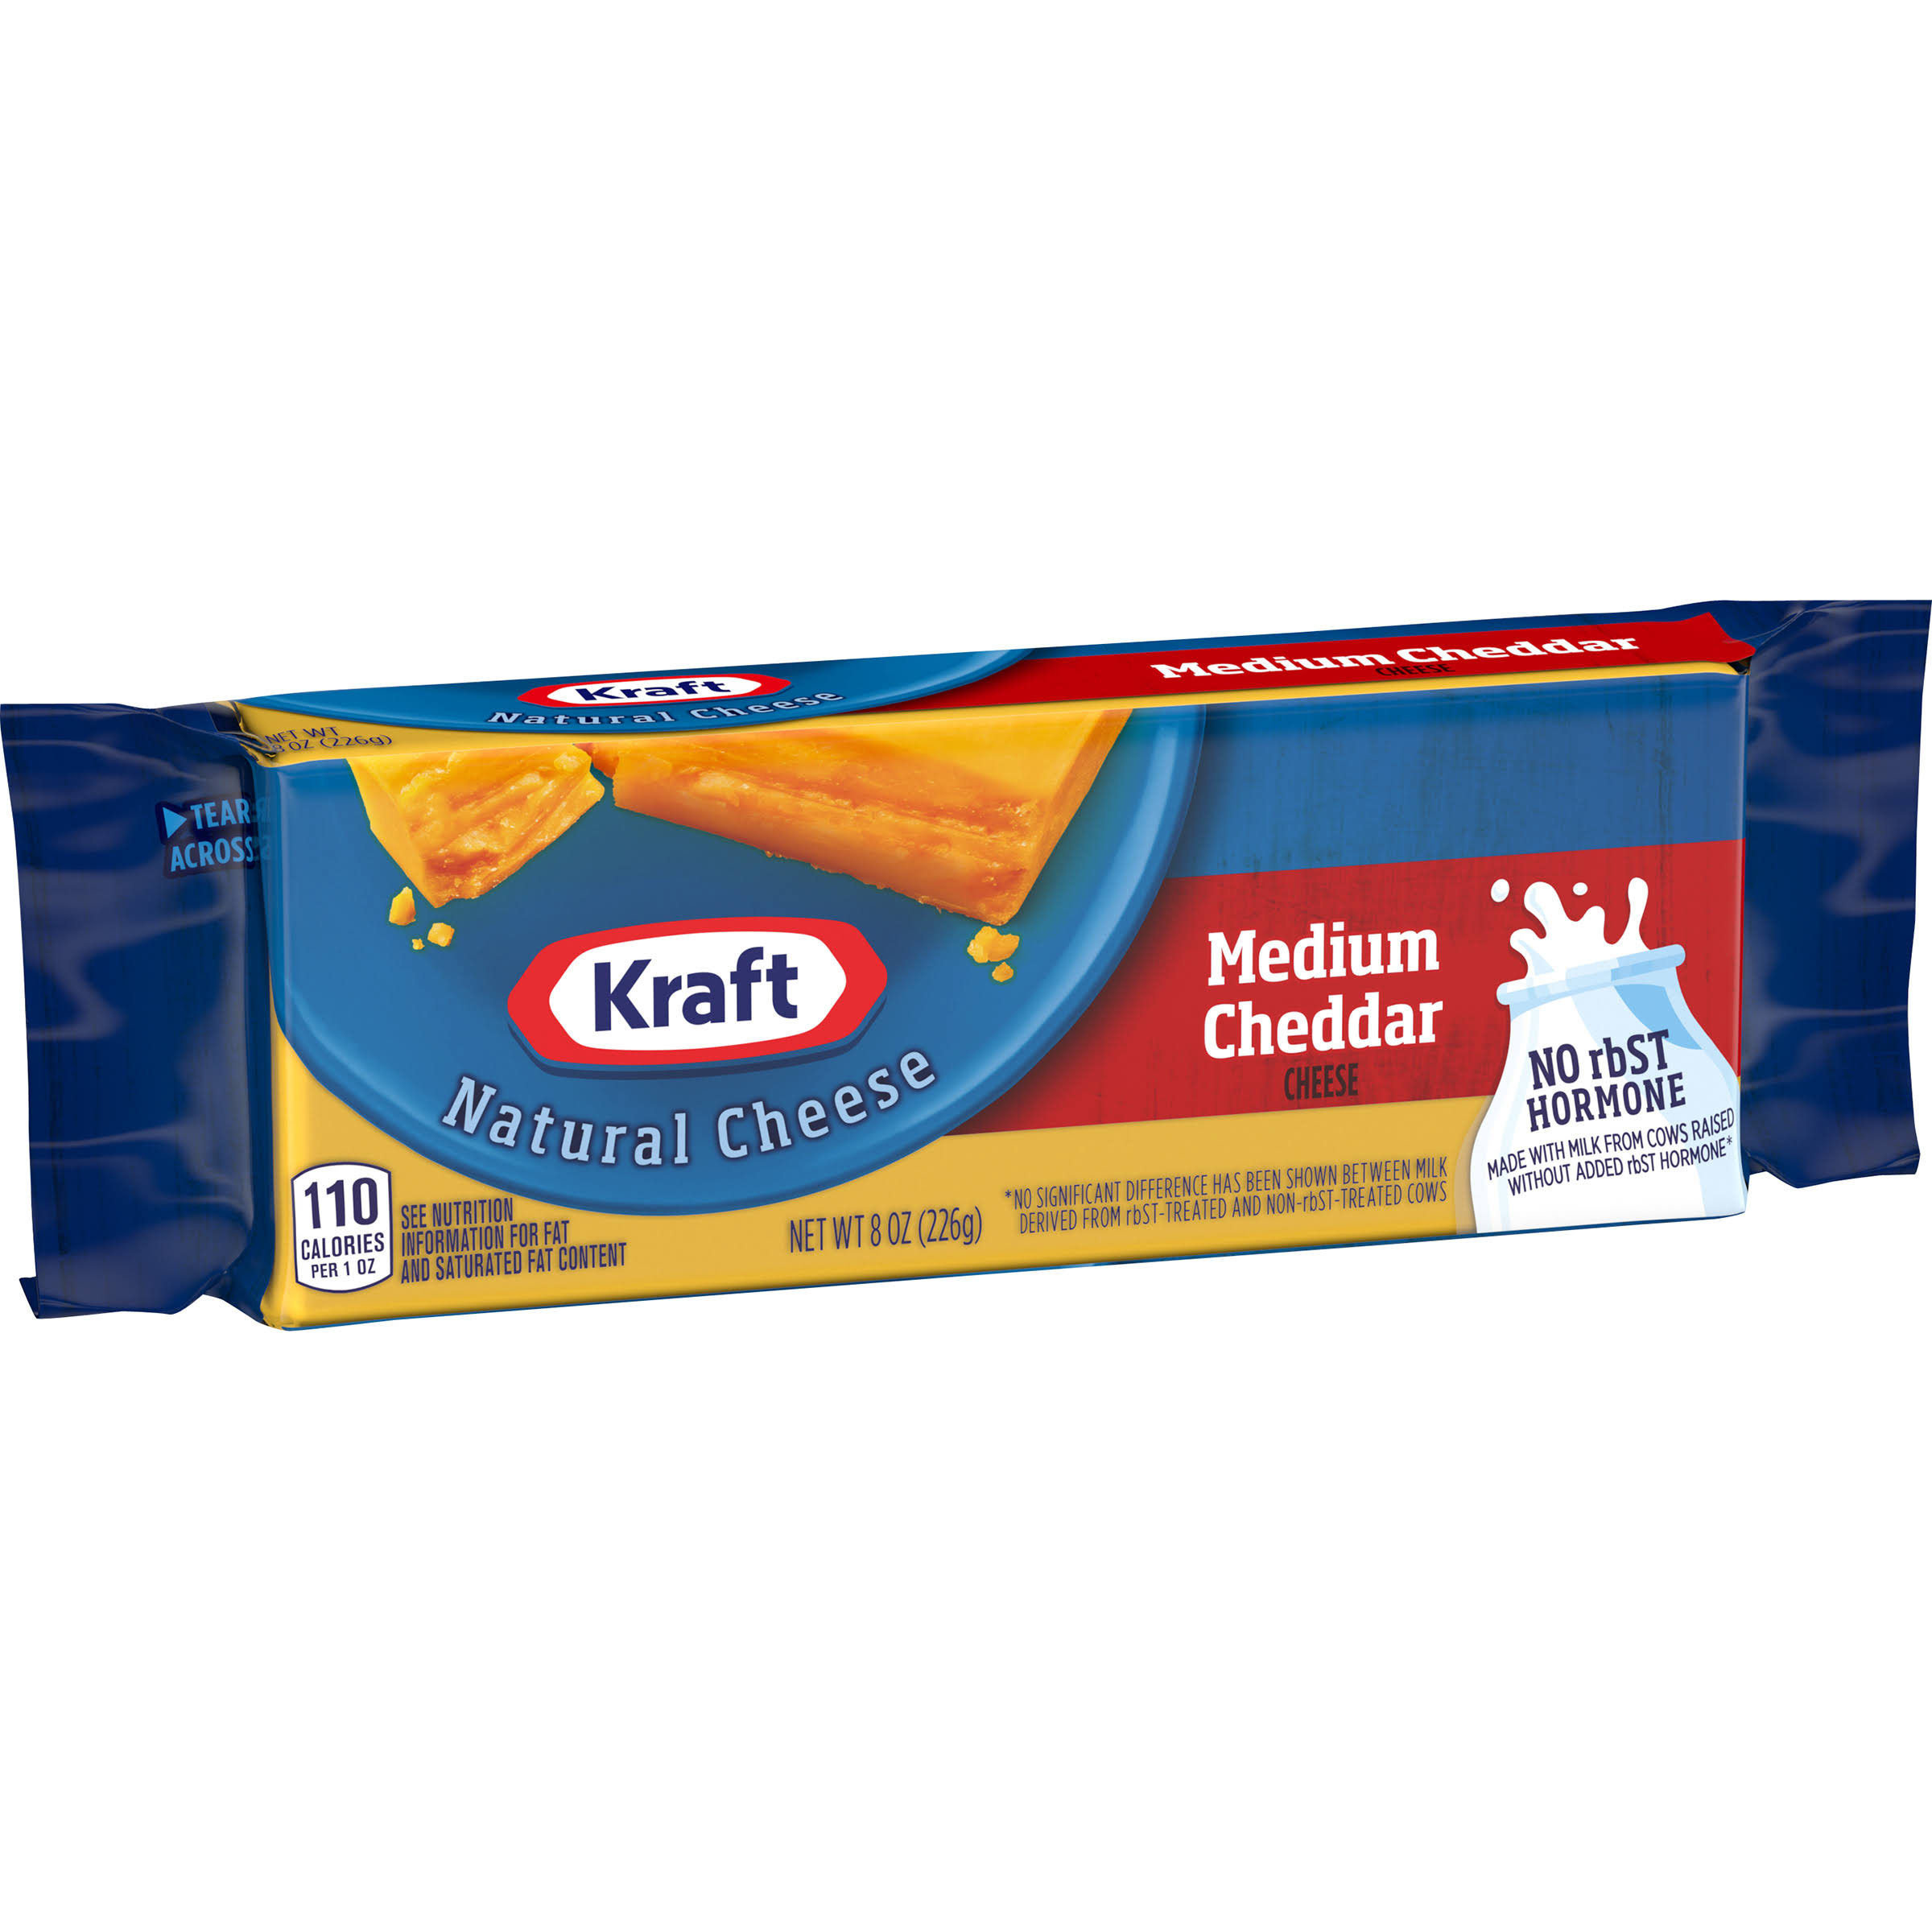 Kraft Medium Cheddar Cheese - 226g